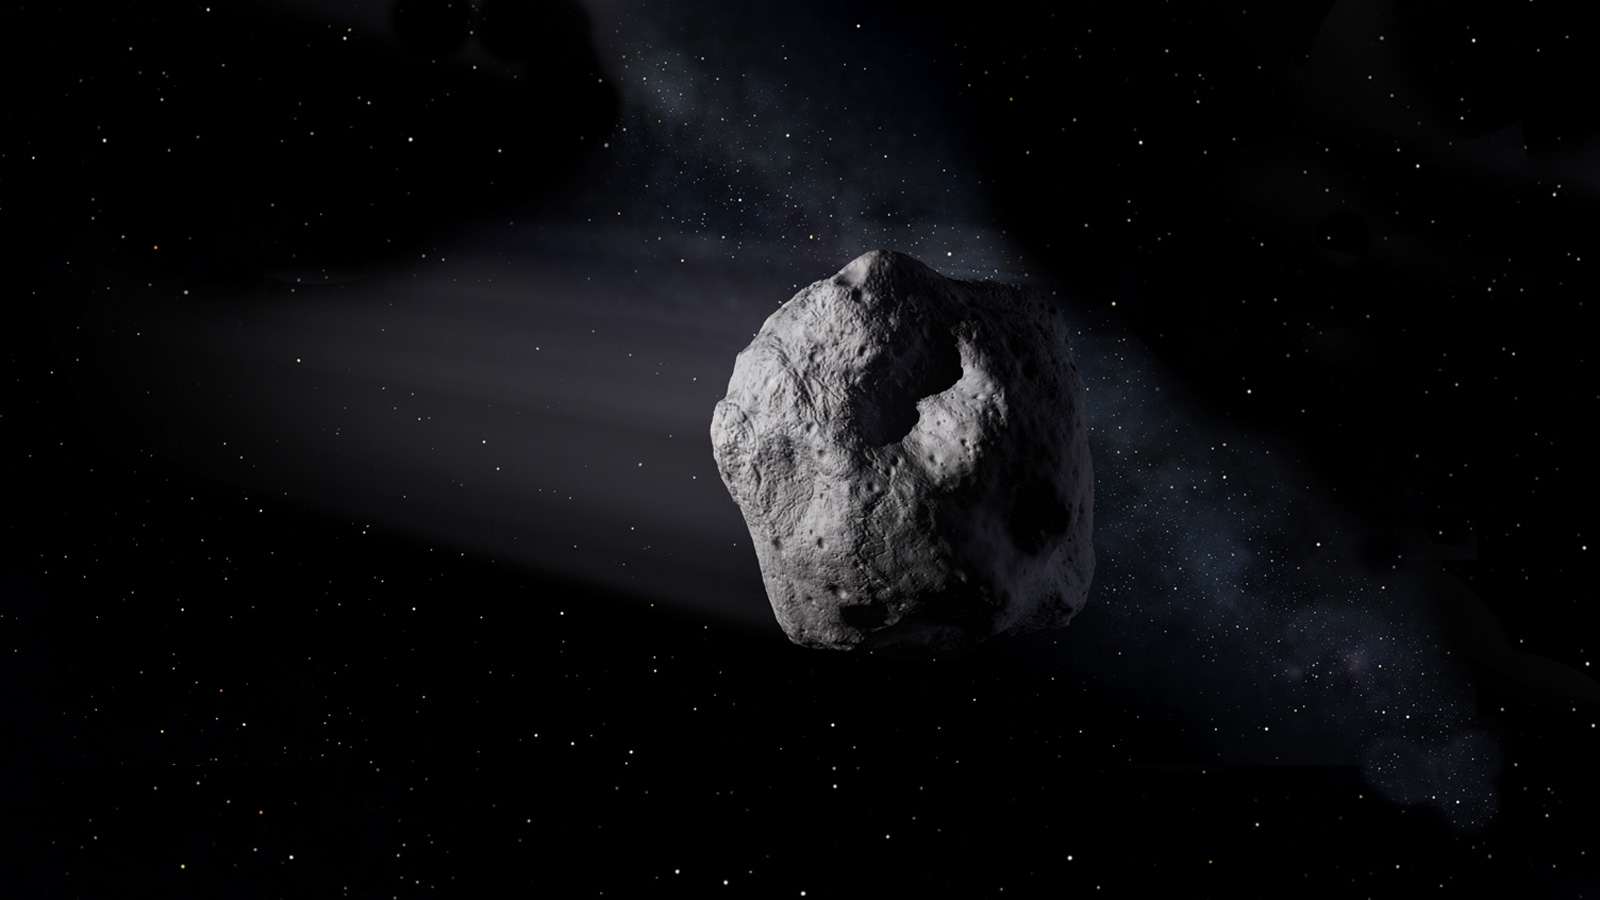 School Bus-Sized Asteroid Zooms Past Earth